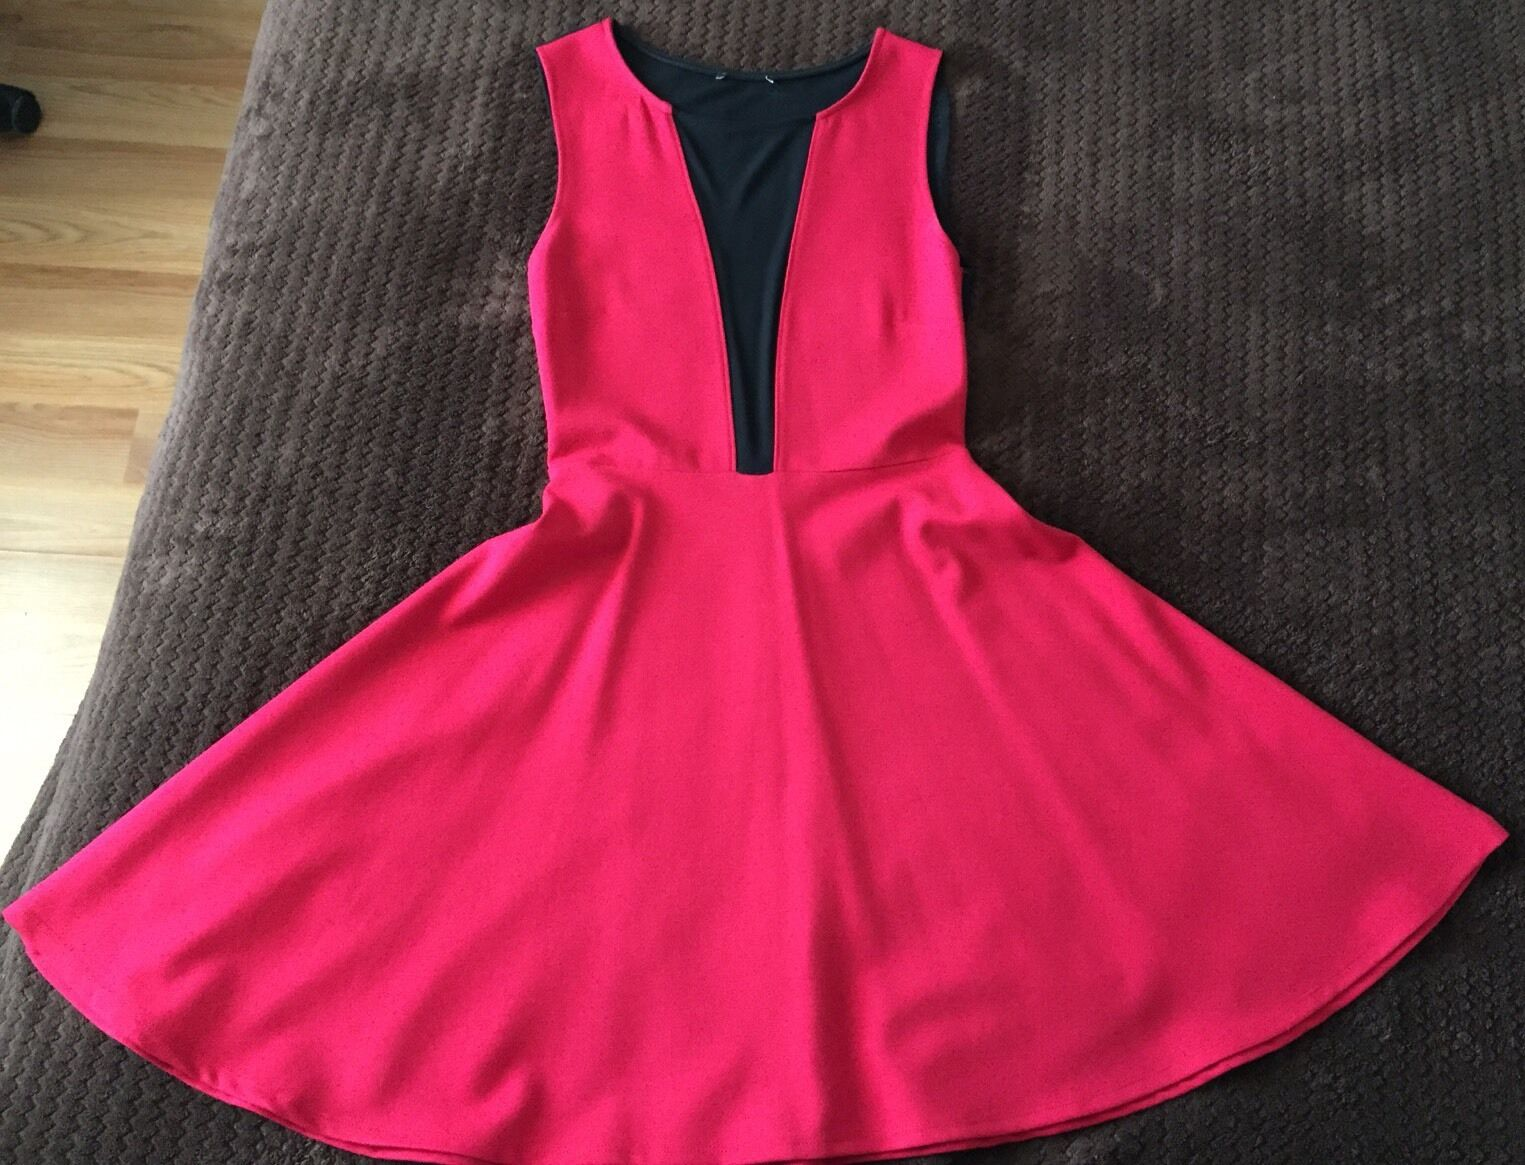 Bebe Red  Party Dress Women  Spring Summer Fashion Size Small